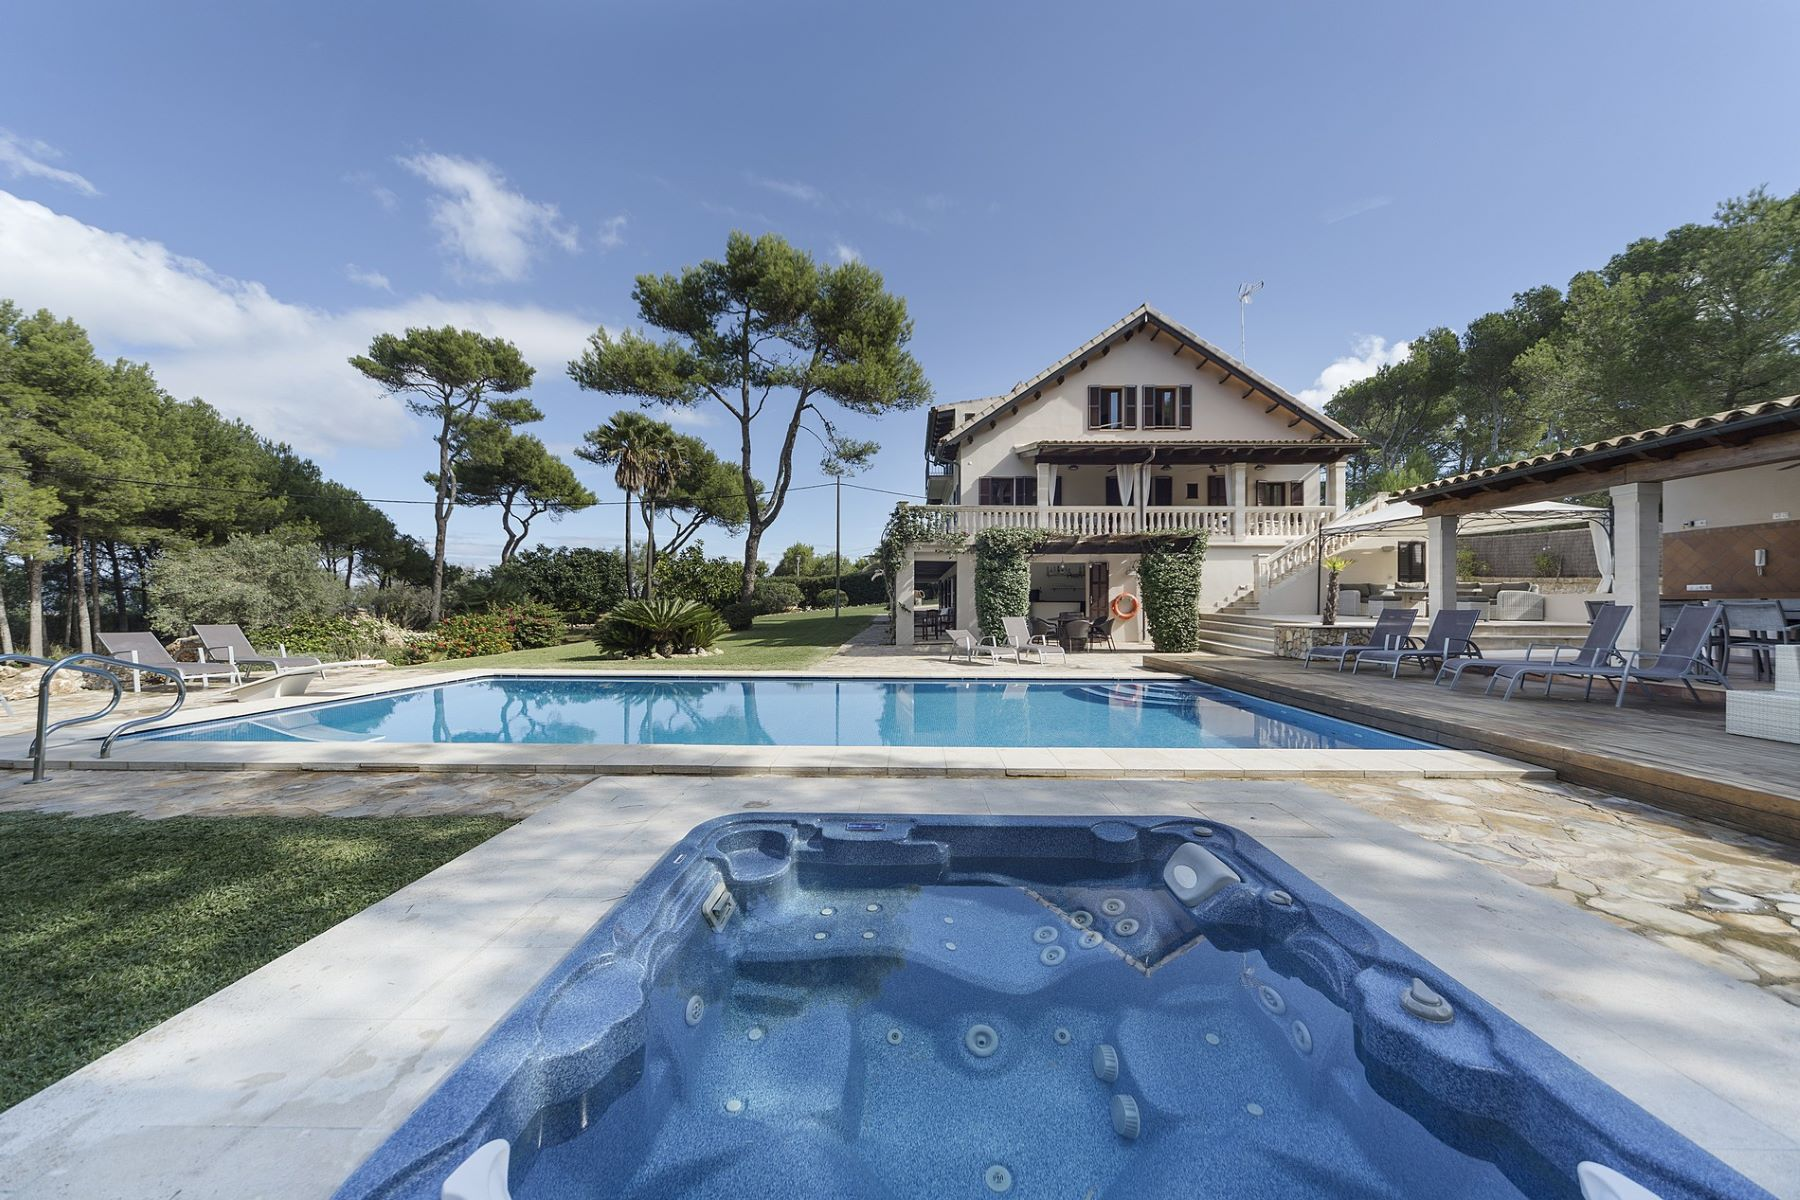 Single Family Home for Sale at Wonderful Mediterranean villa near the beaches Other Spain, Other Areas In Spain, Spain